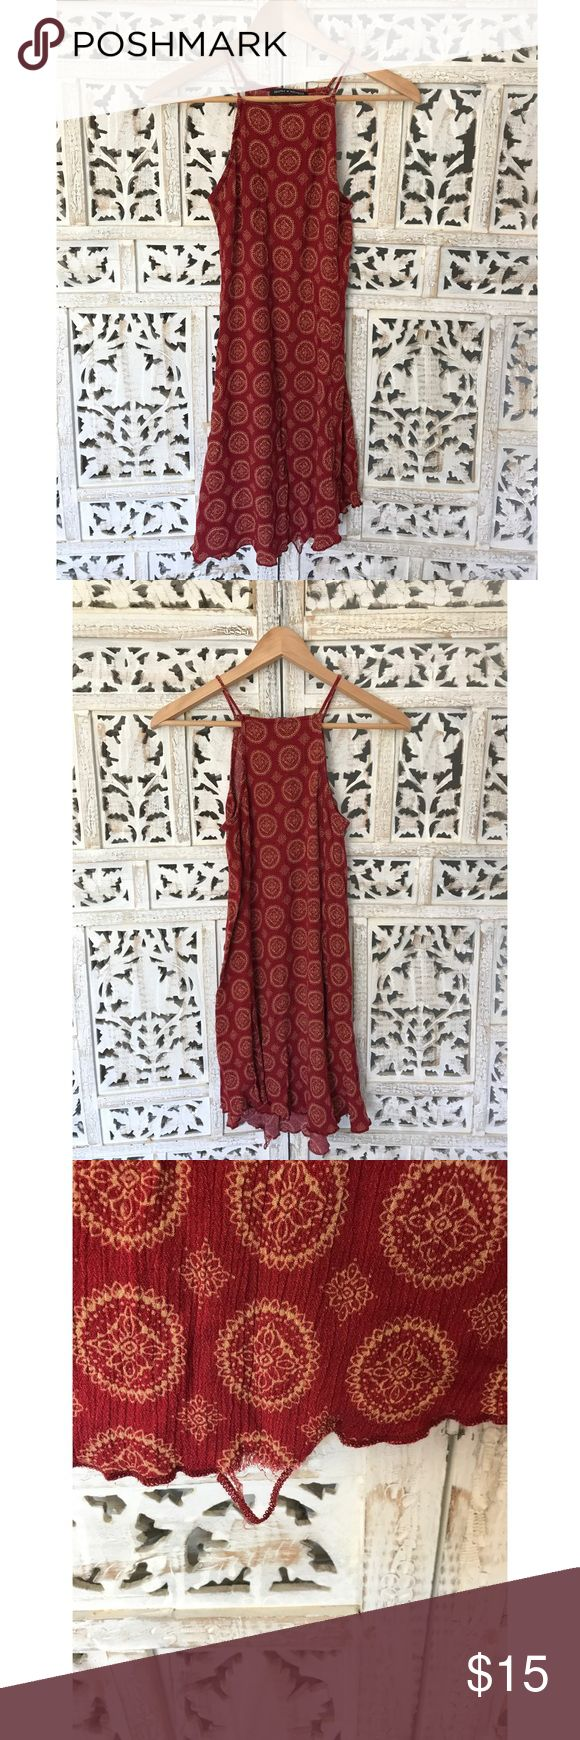 Brandy Melville henna print dress Gauzy trapeze neck sun dress from Brandy Melville. Bought in Venice Beach 2 summers ago and worn maybe 4x. My old washer's strongest feature was ripping my clothes so take notice of the hem coming undone in the attached pic. It's an easy fix to make the dress look like new. A tailor could even do it for a few bucks. Priced for the damage, no offers. Brandy Melville Dresses Mini